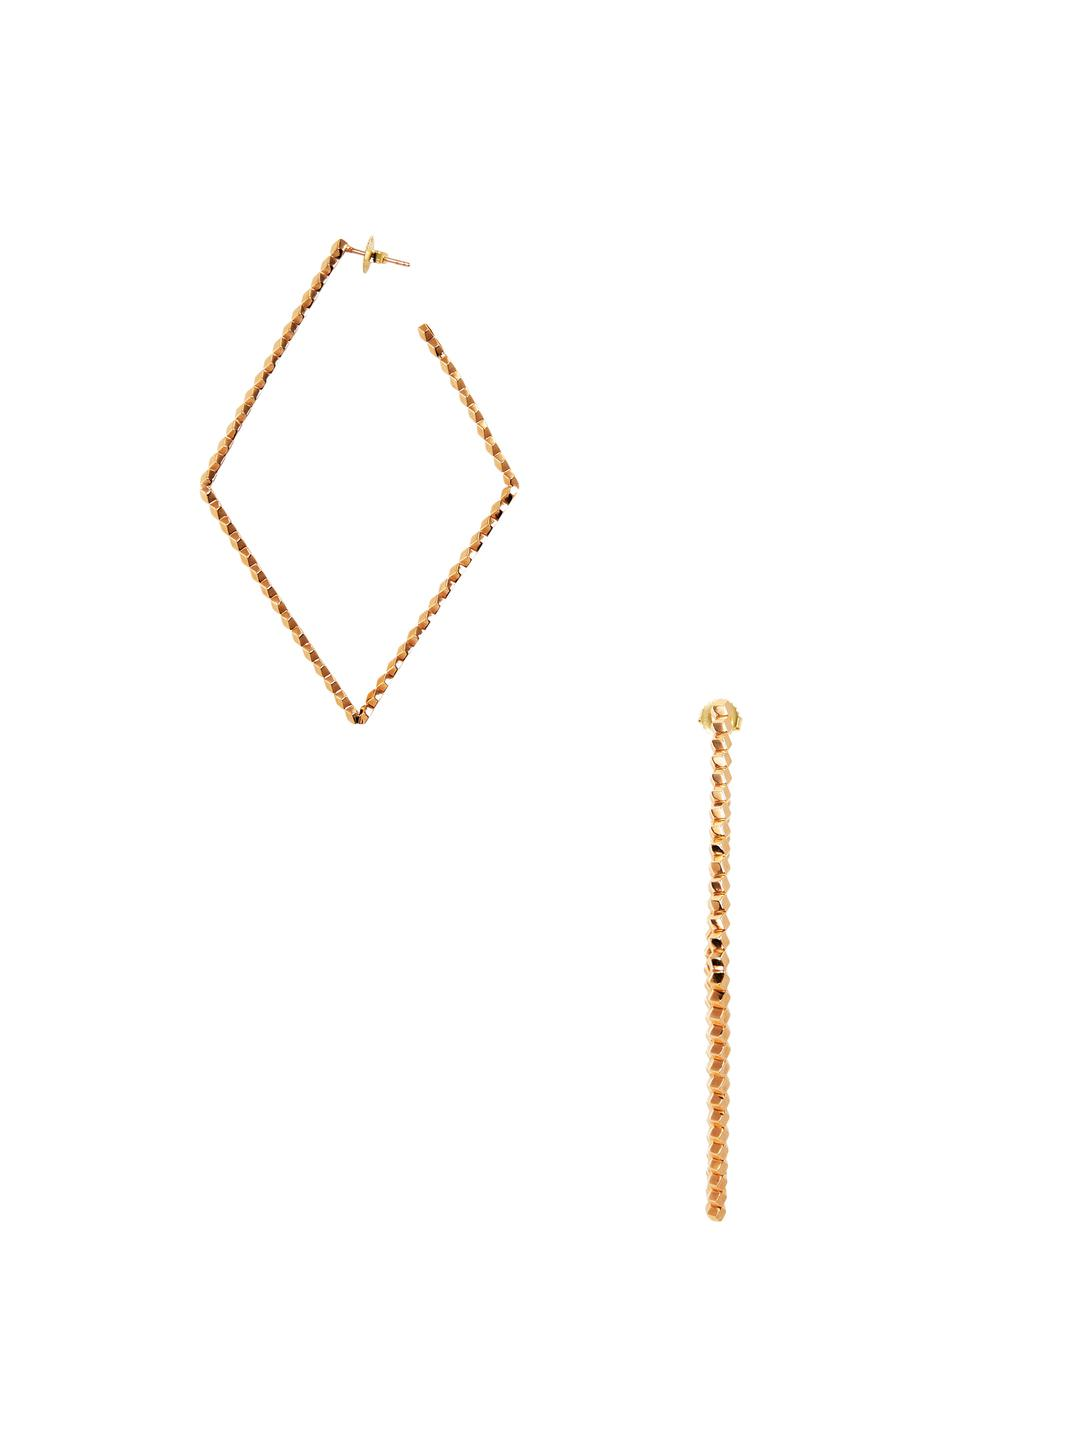 Gallery Previously Sold At Gilt Women S Gold Hoop Earrings